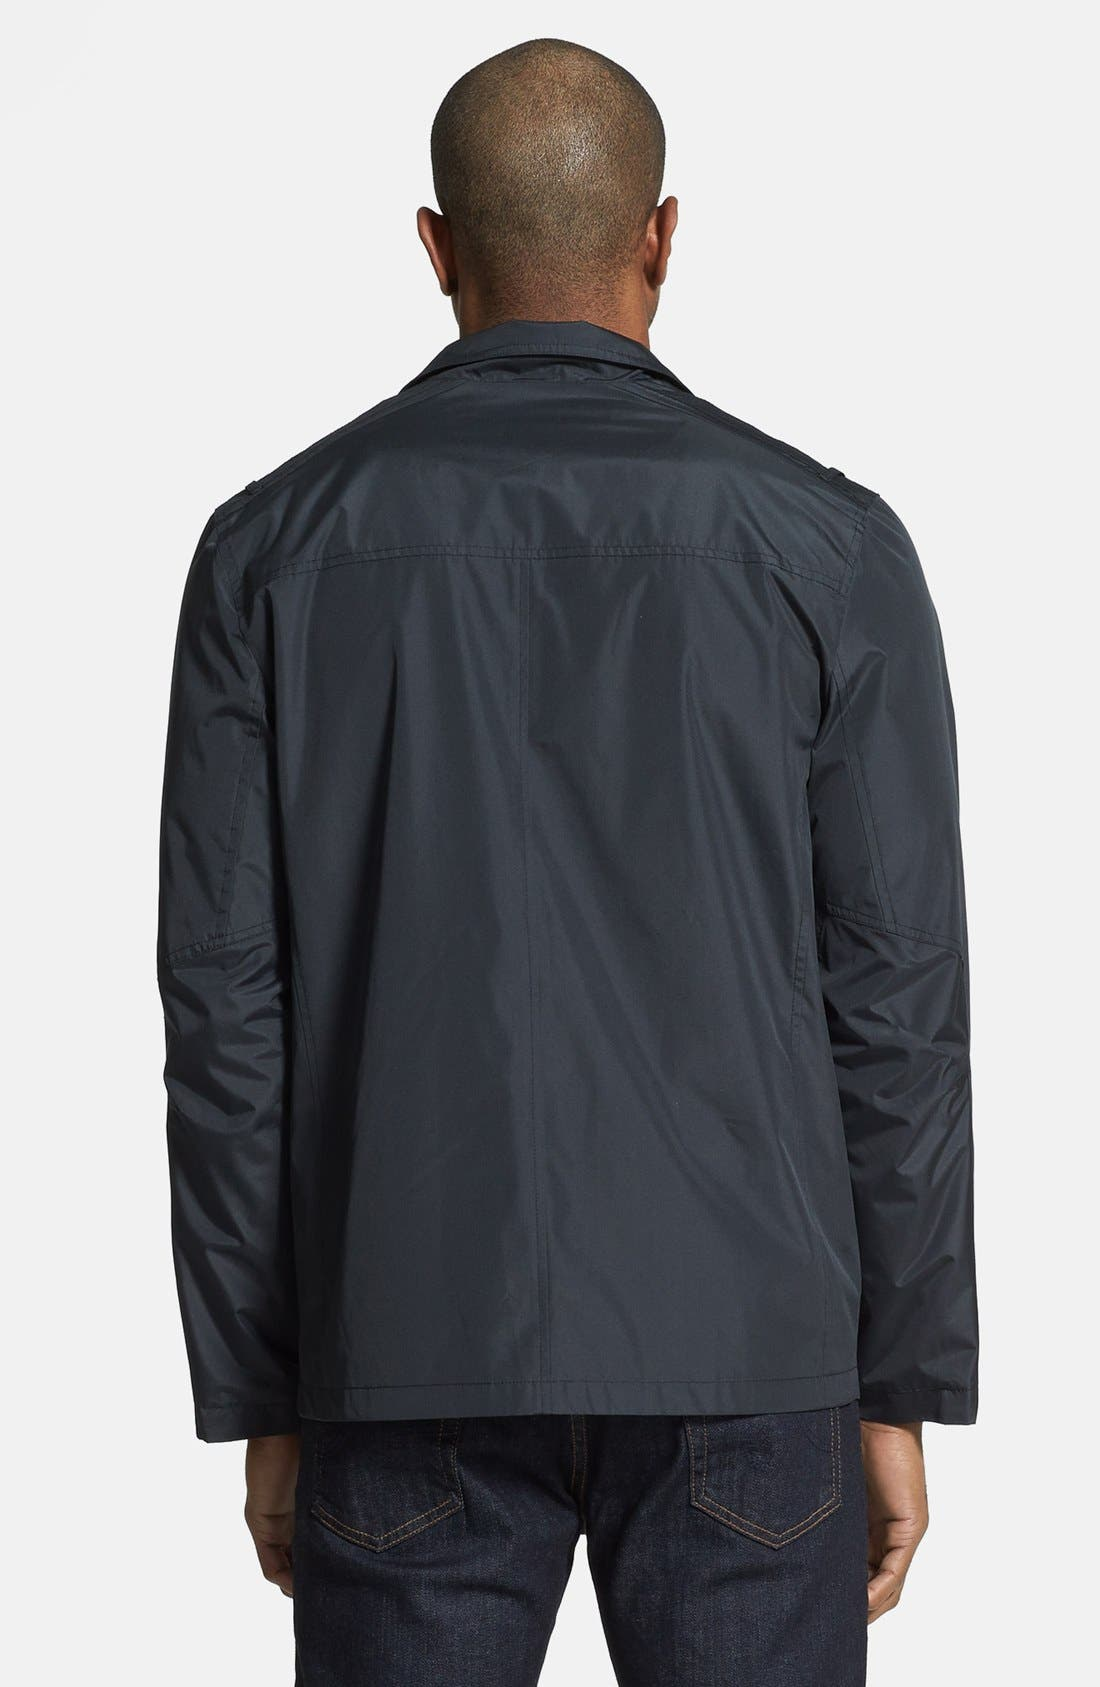 ANDREW MARC,                             'Robert' Water Resistant Jacket,                             Alternate thumbnail 6, color,                             001